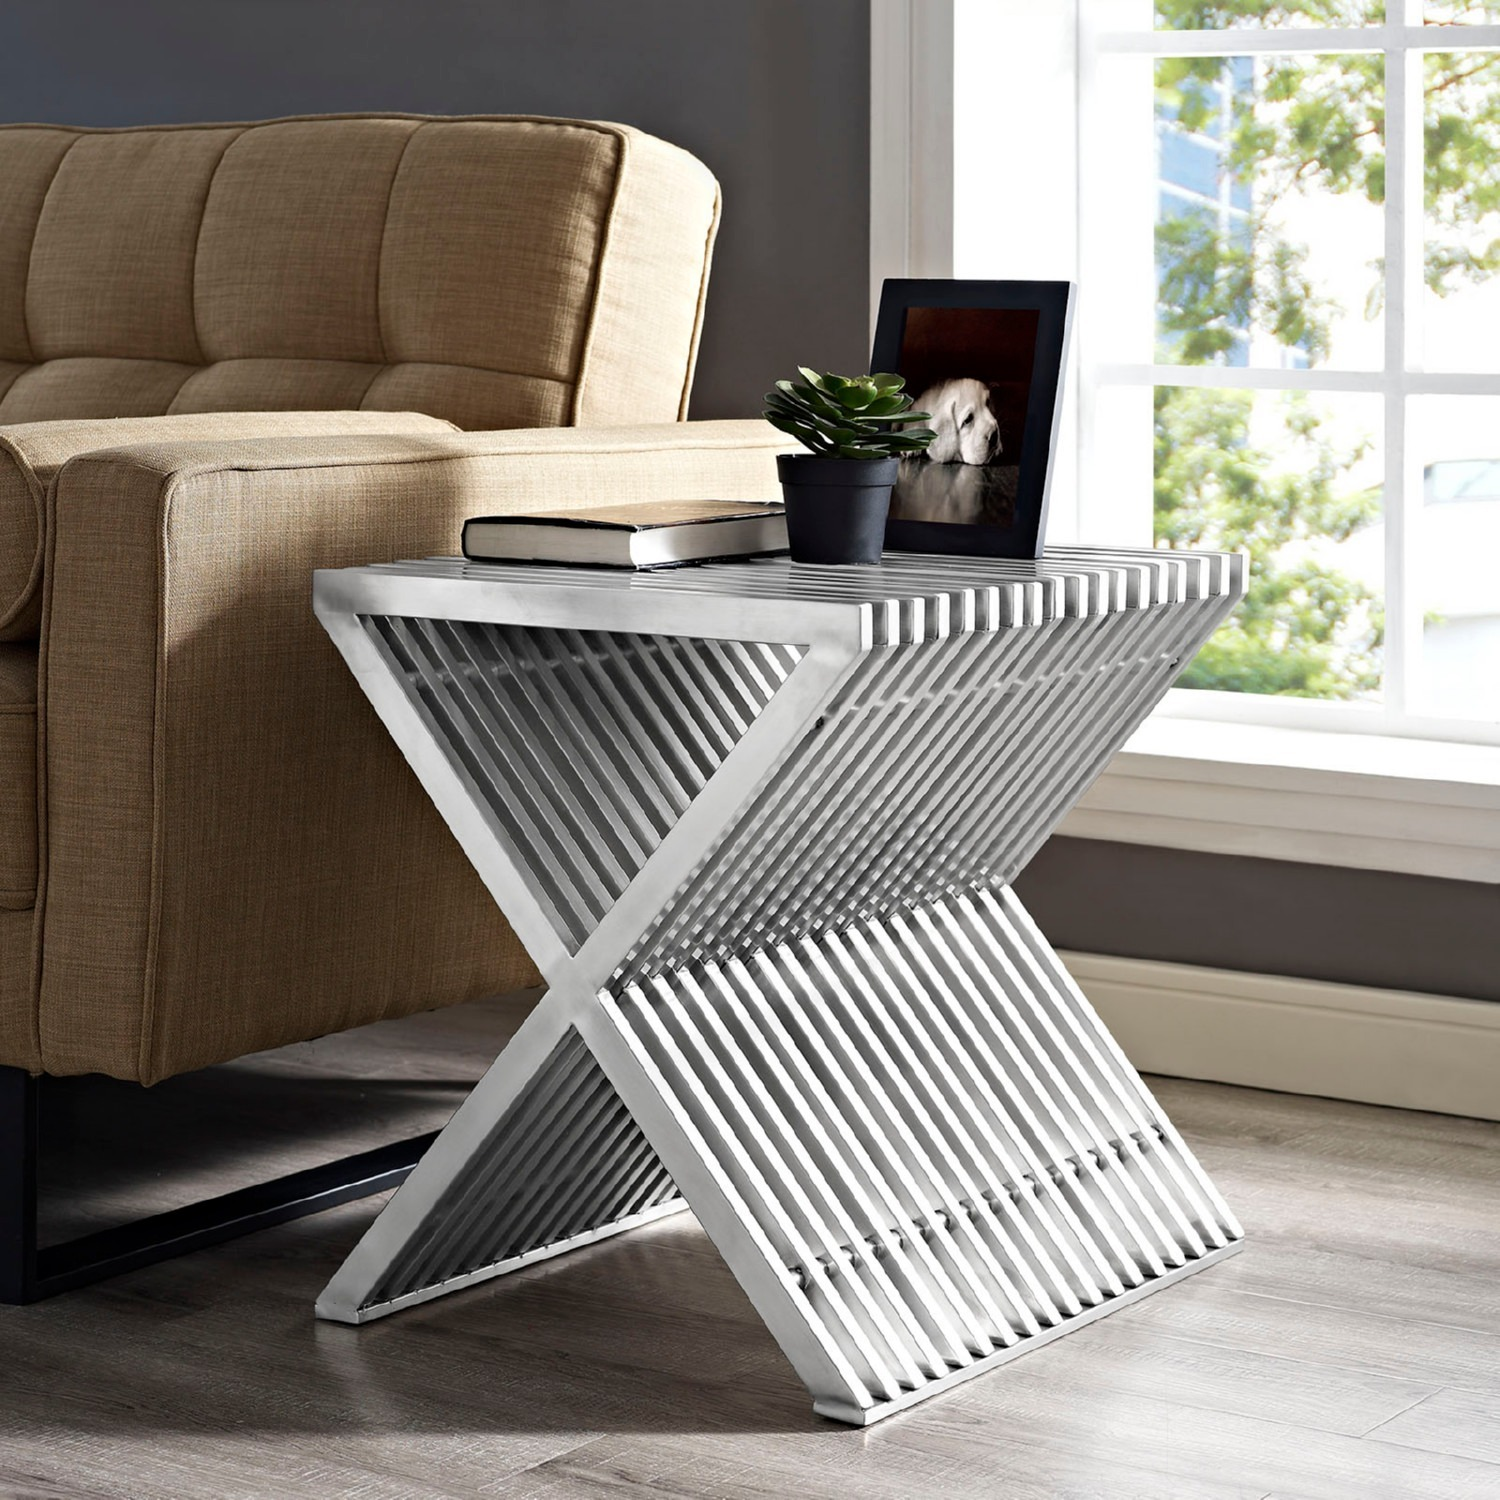 Modern Side Table In Silver Stainless Steel Finish - image-2